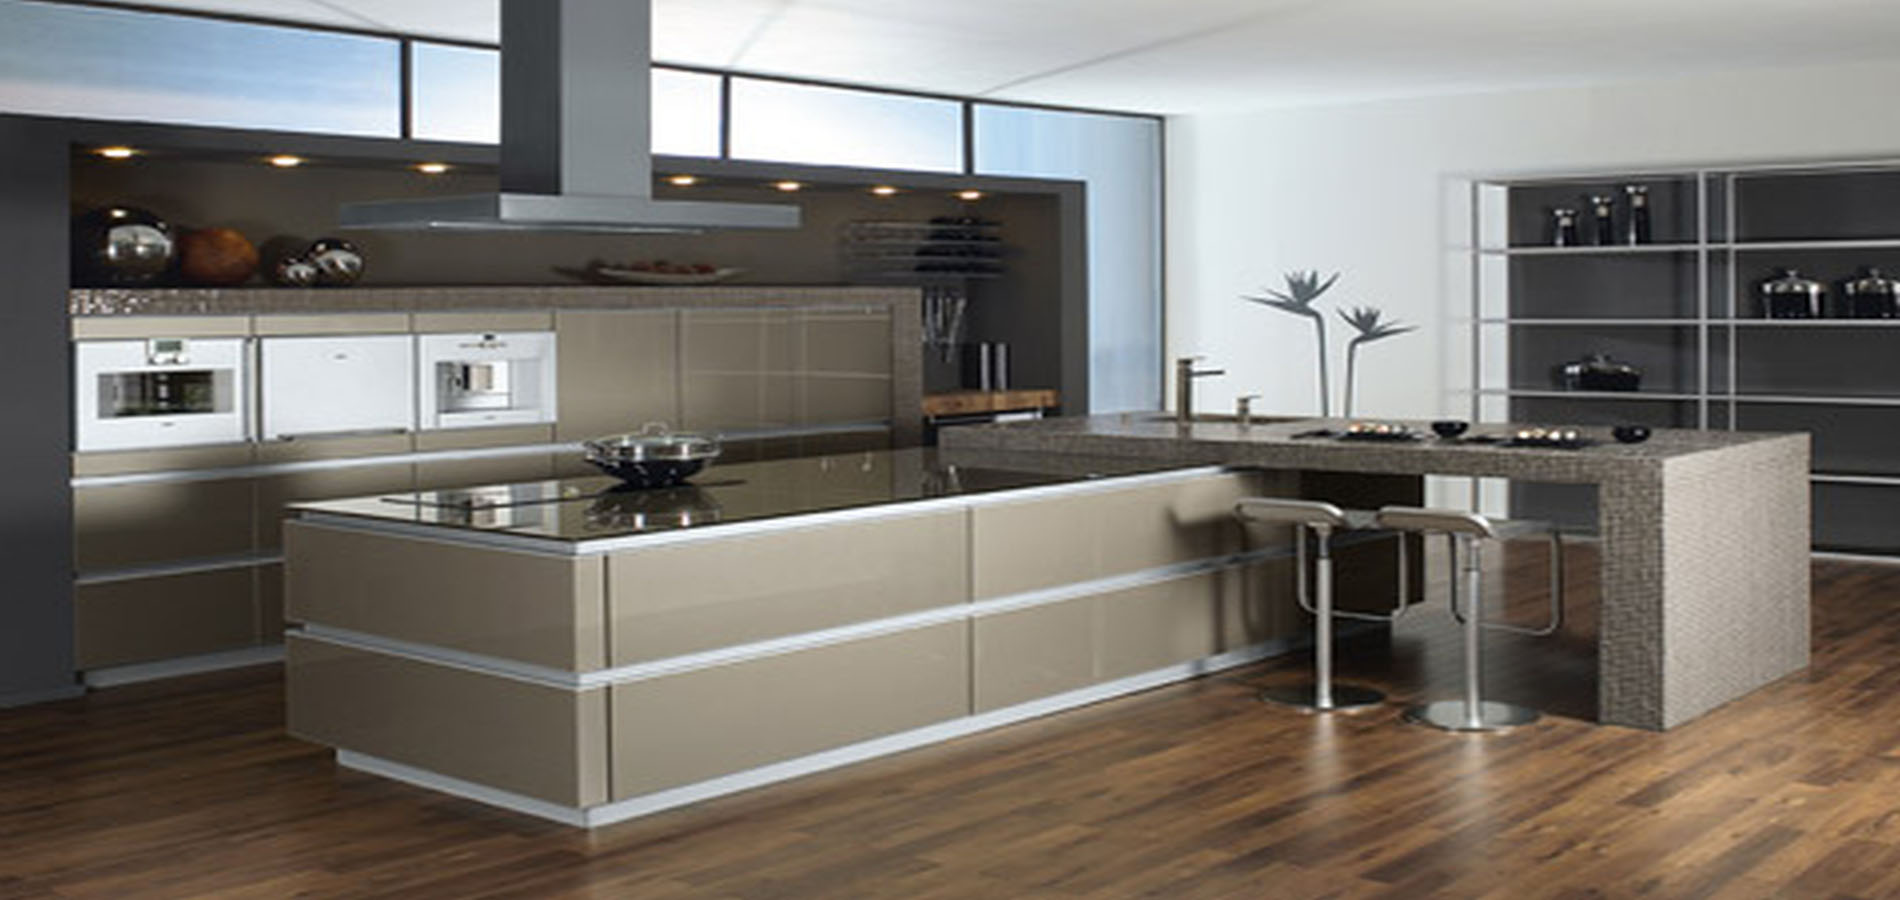 kitchen design malaysia price cheap kitchen cabinet malaysia great design amp functional 750